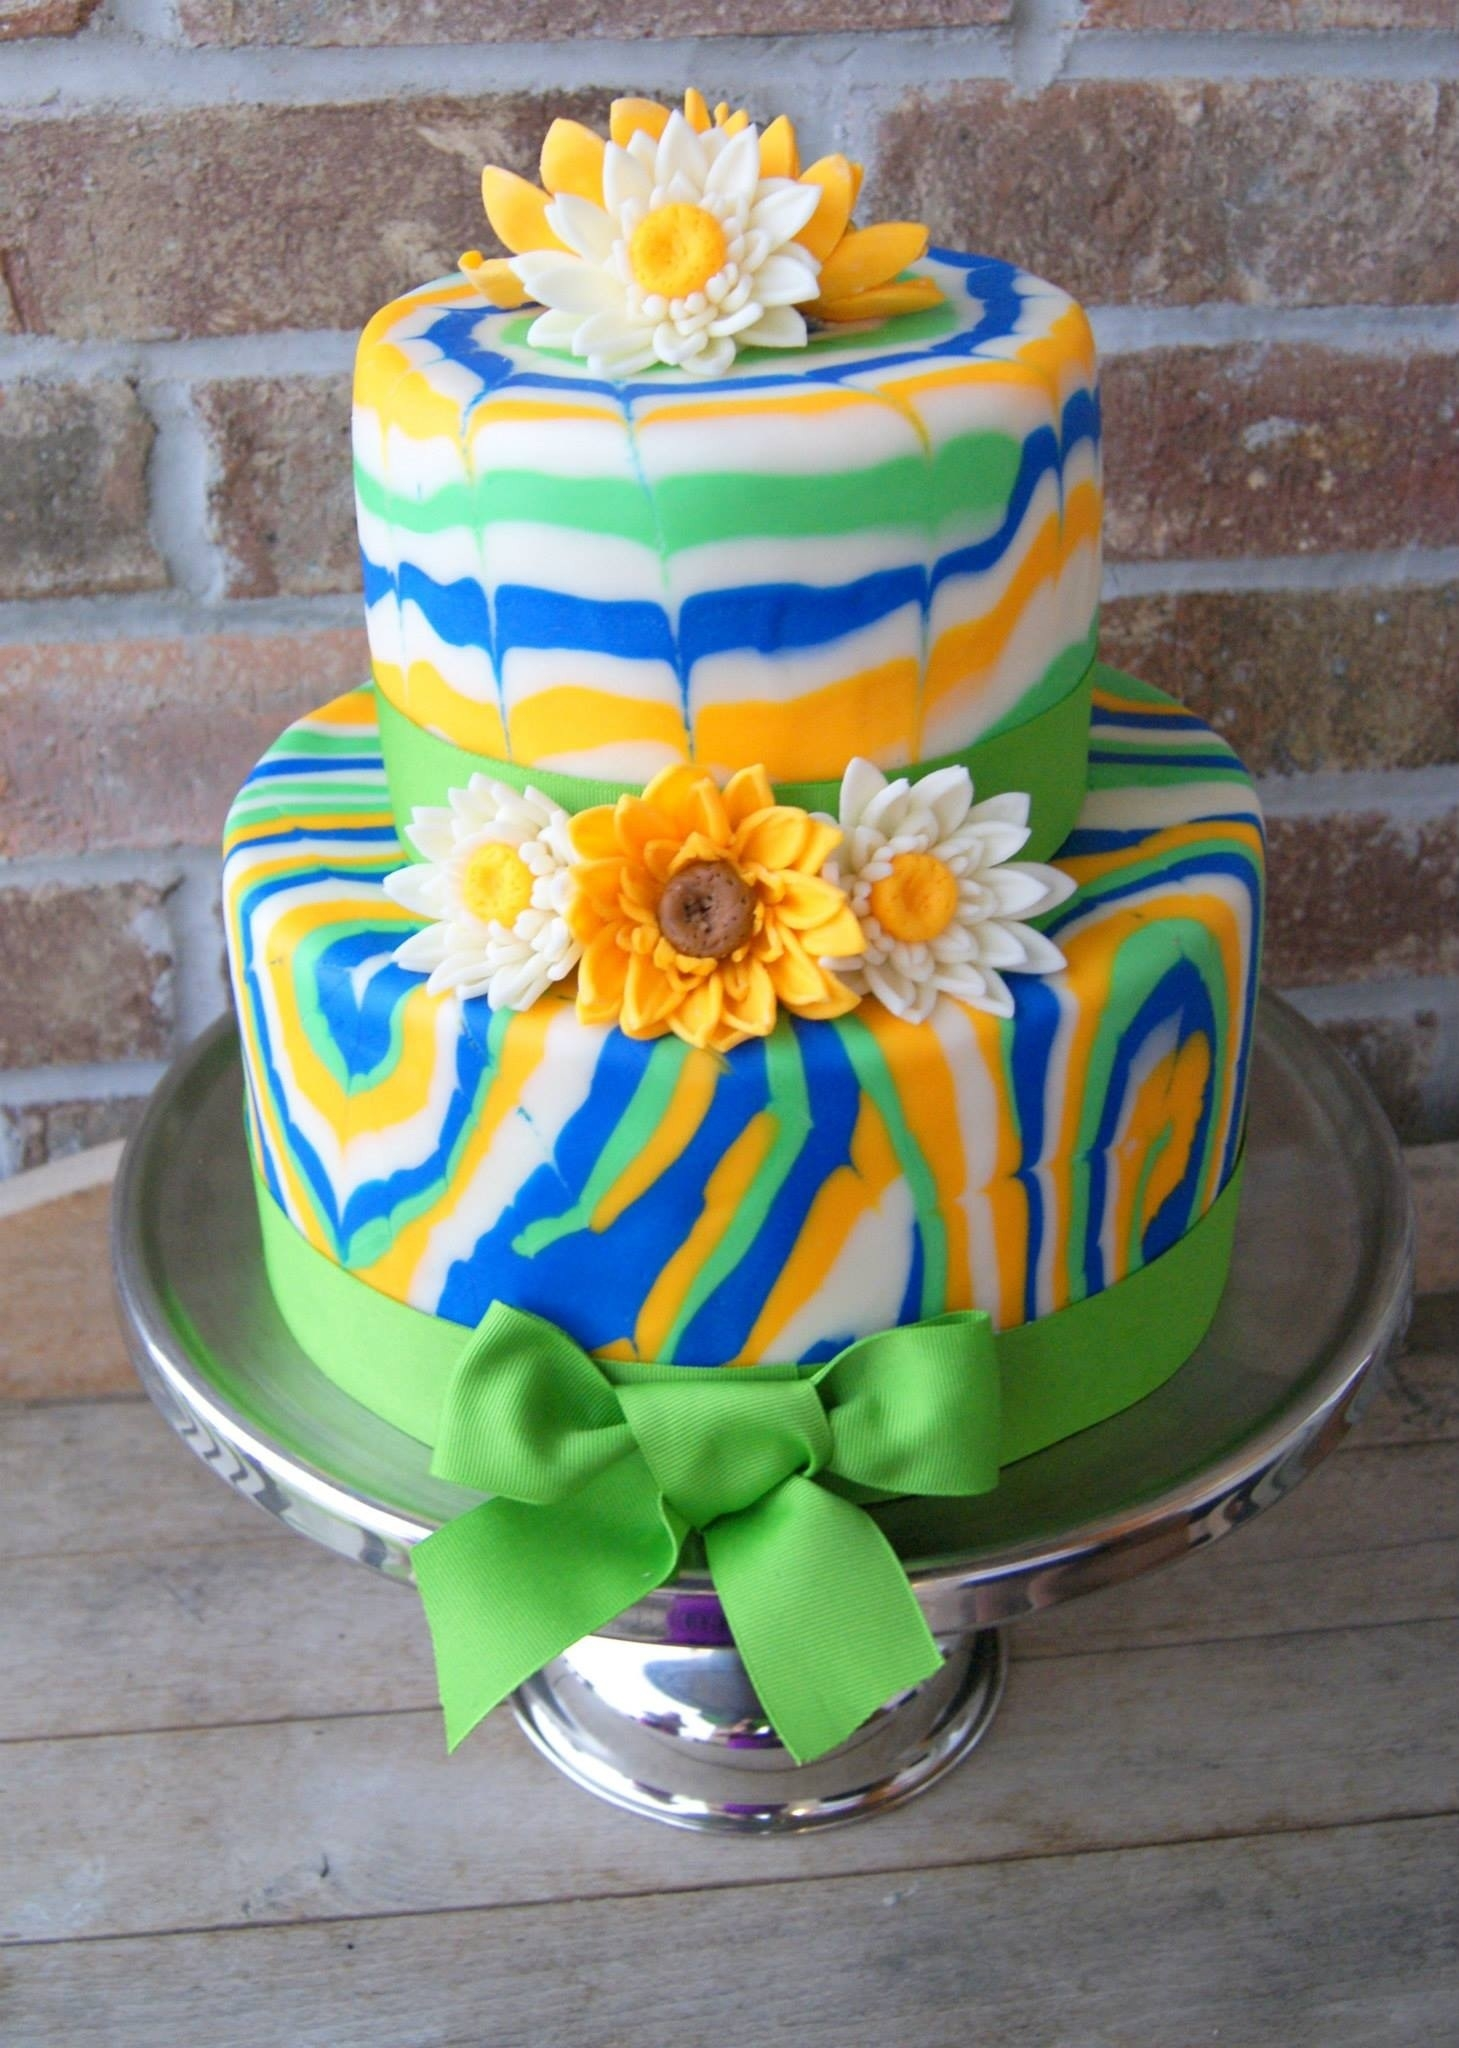 Tie-Dyed Wedding Cake Tie-dyed fondant with daisies and brown eyed Susan's.